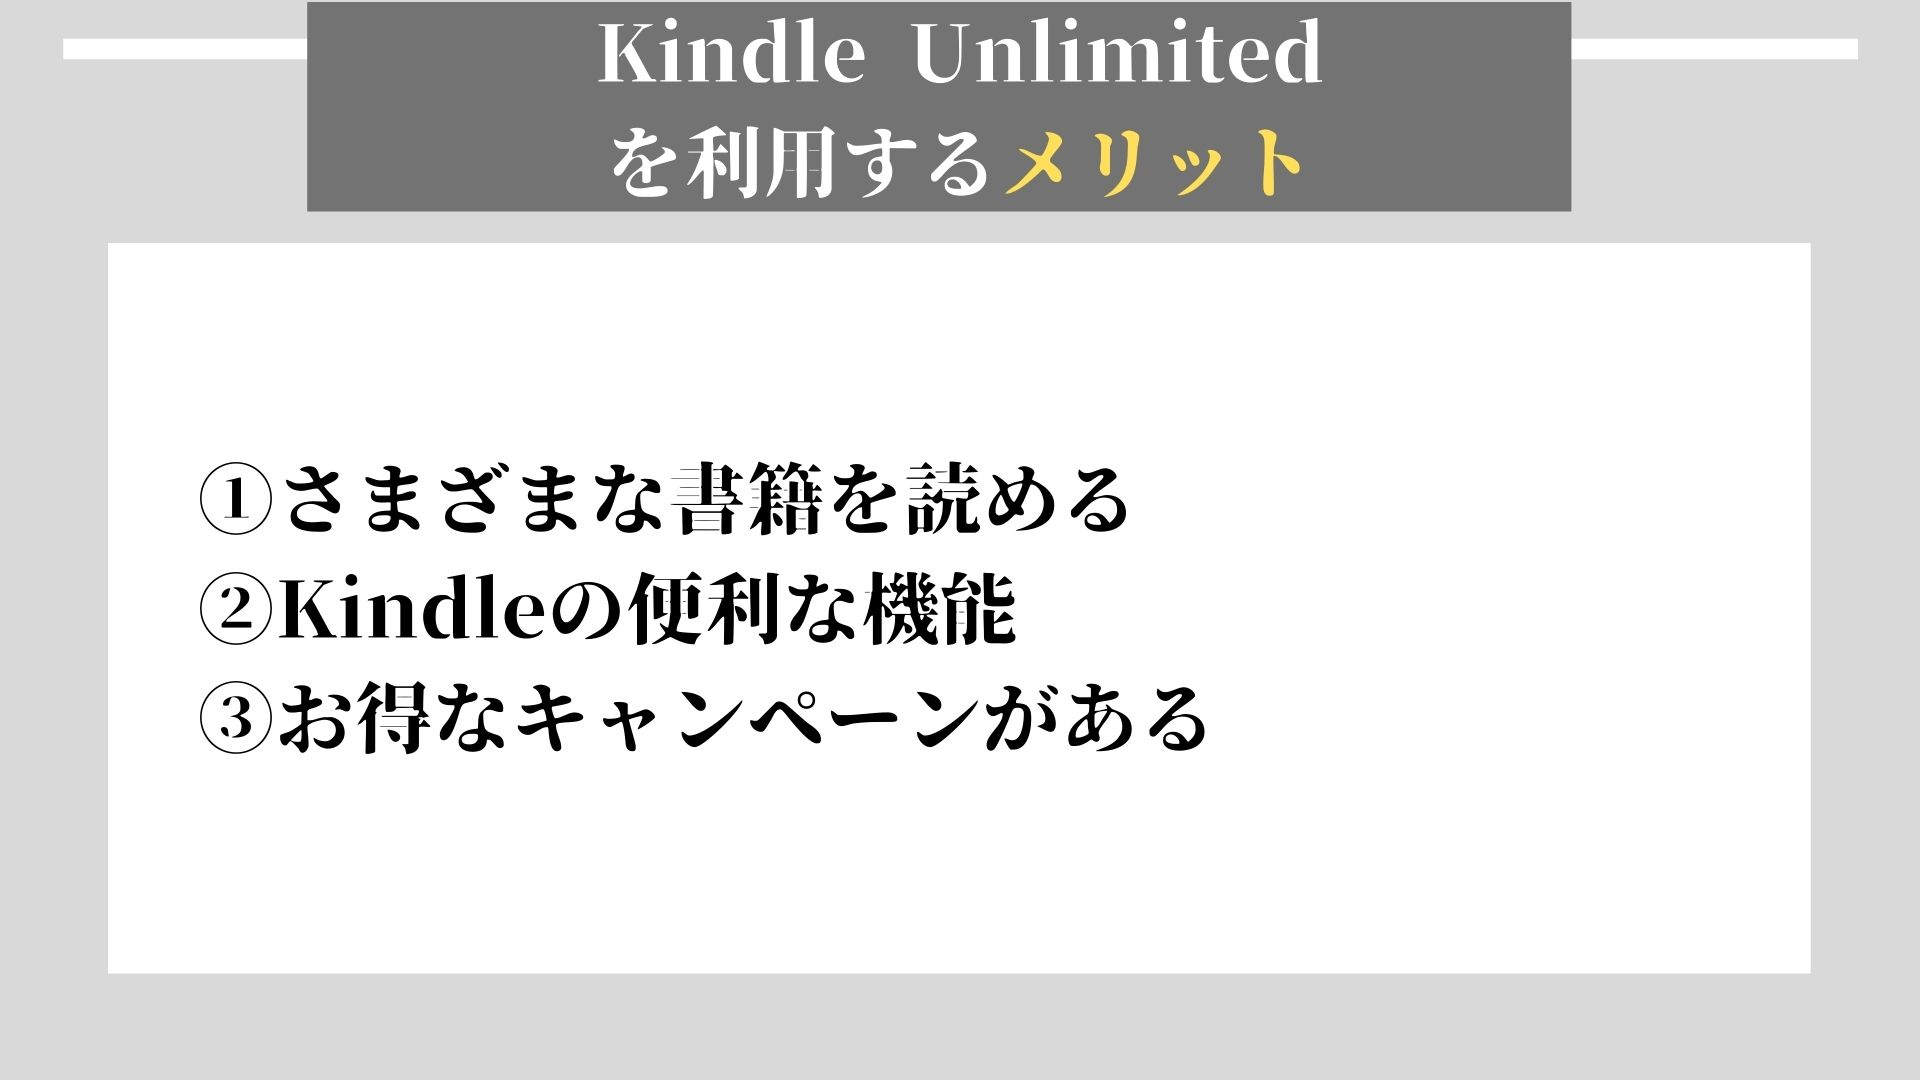 Kindle Unlimited メリット